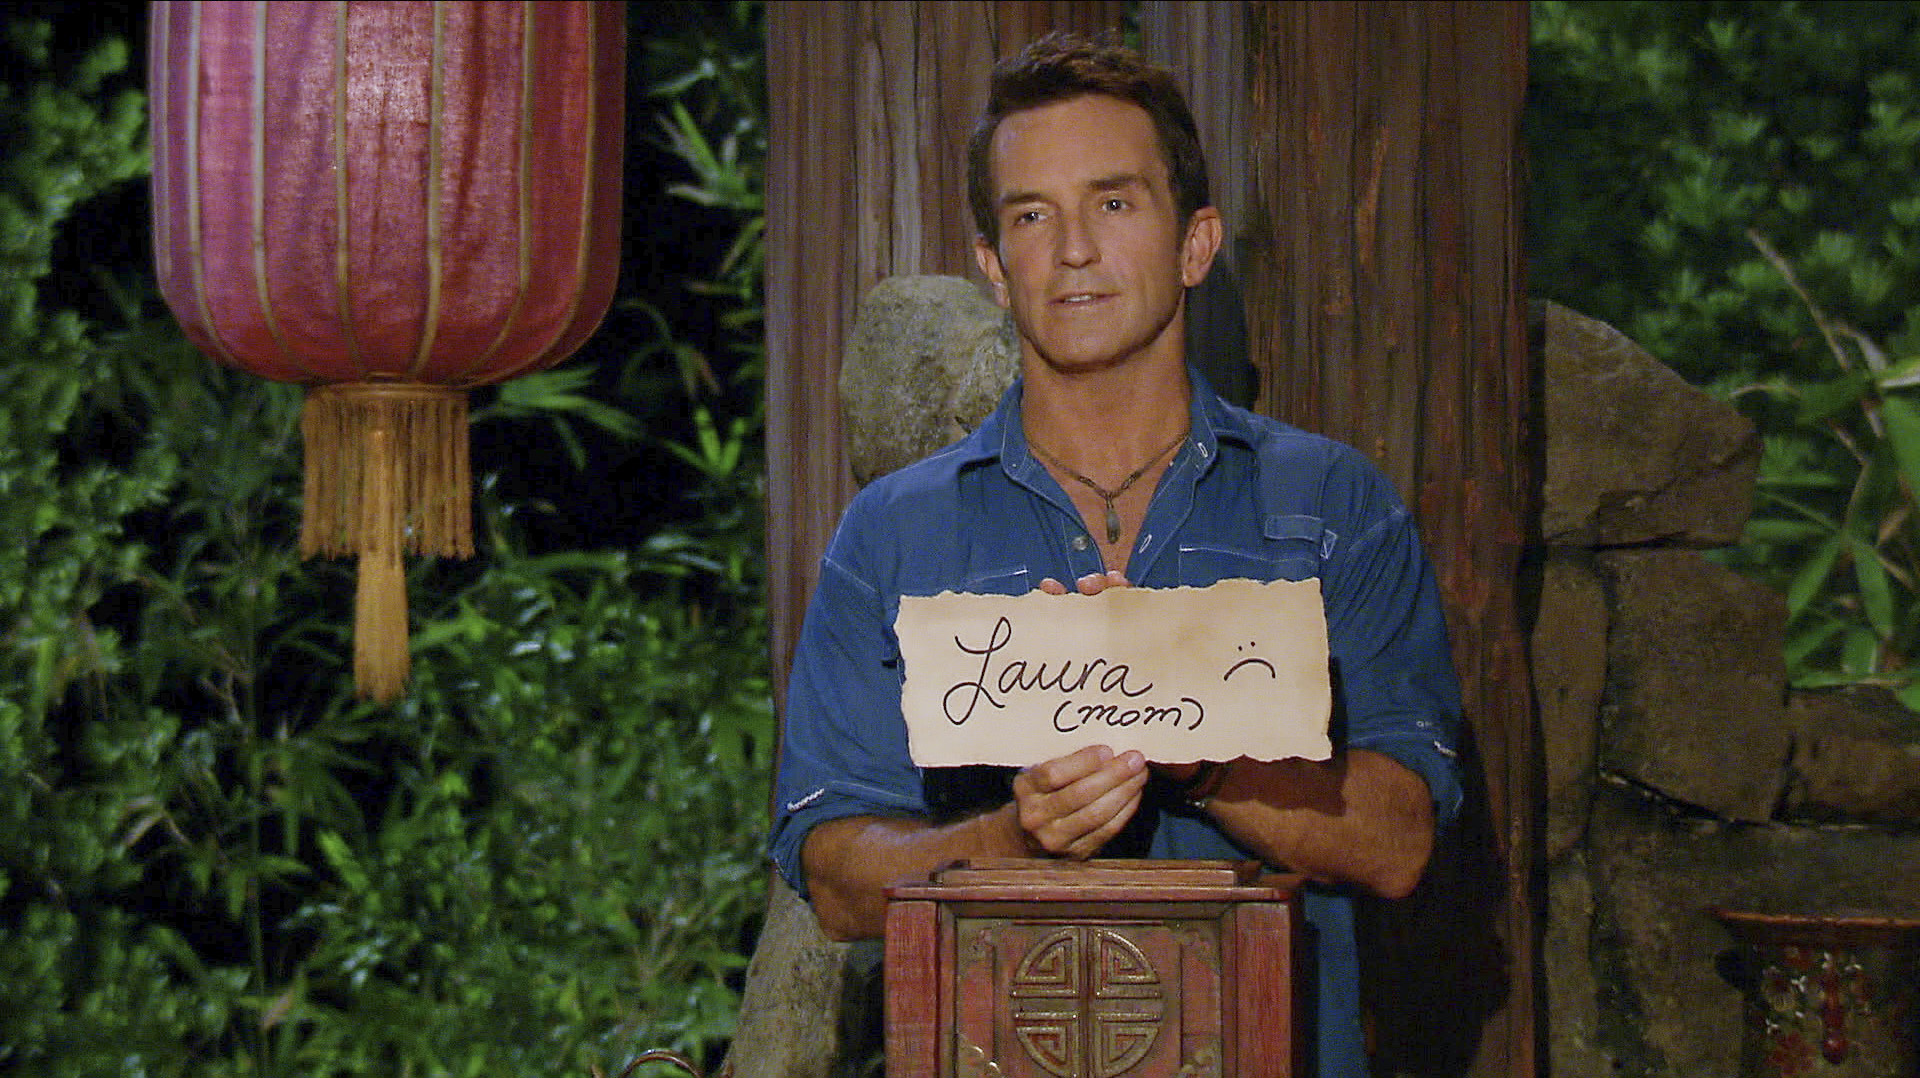 Jeff shows off Ciera's vote against her mom in Season 27 Episode 10